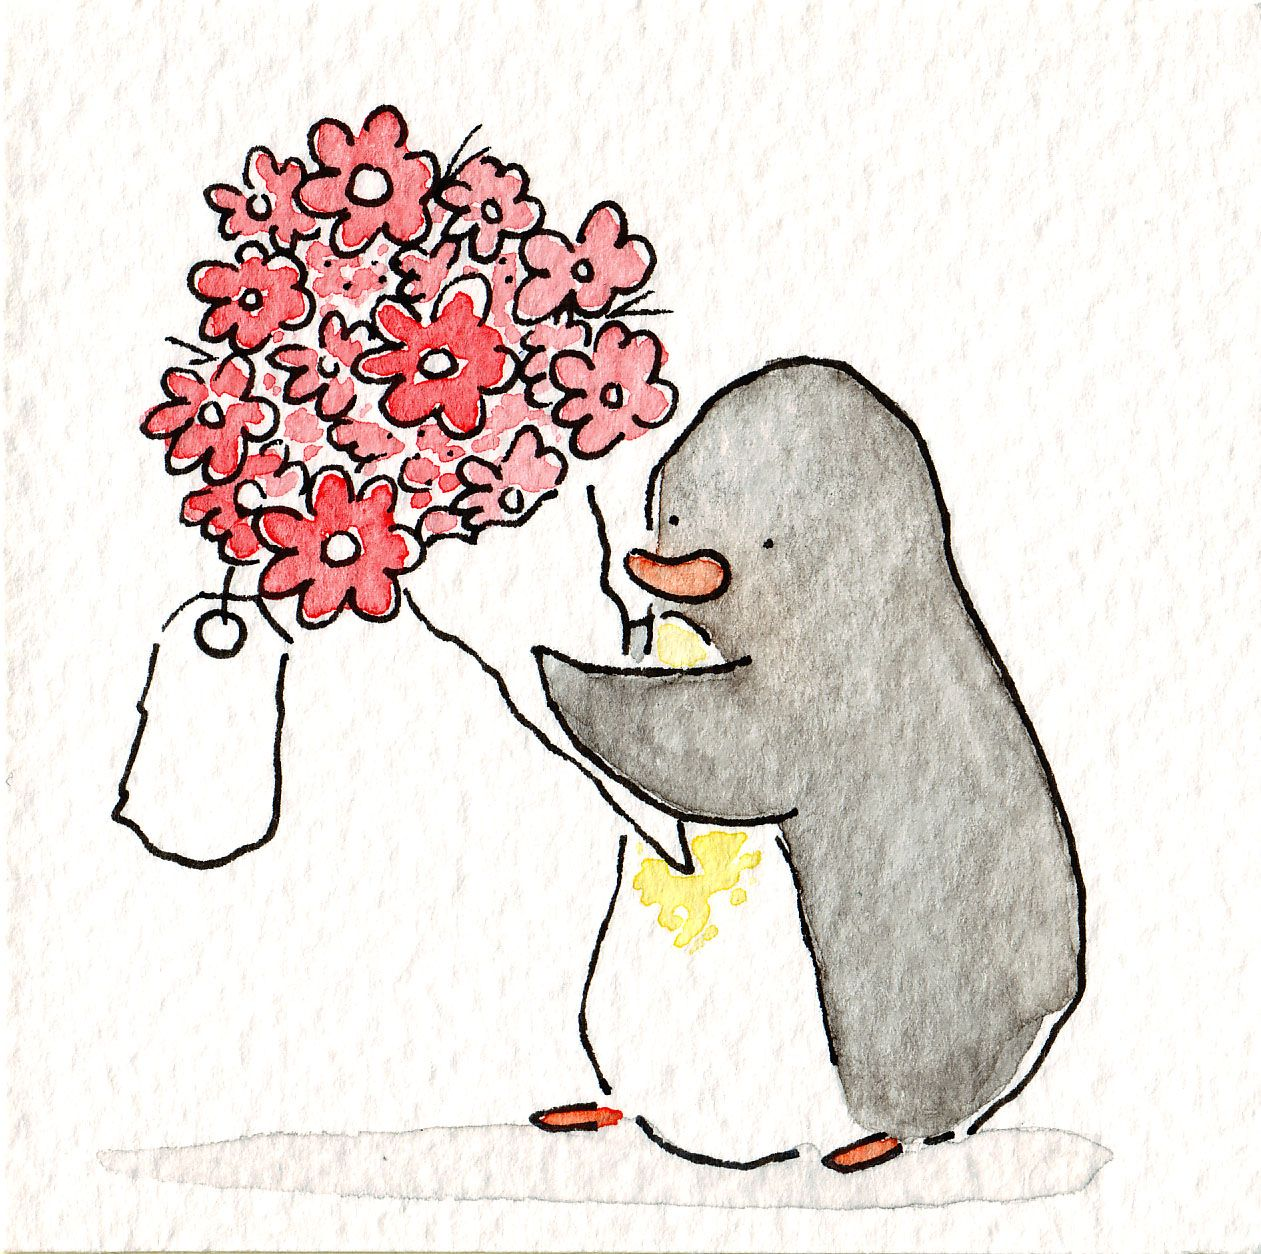 Sad penguin for flu season arte moderno pinterest - Ilustraciones infantiles acuarela ...